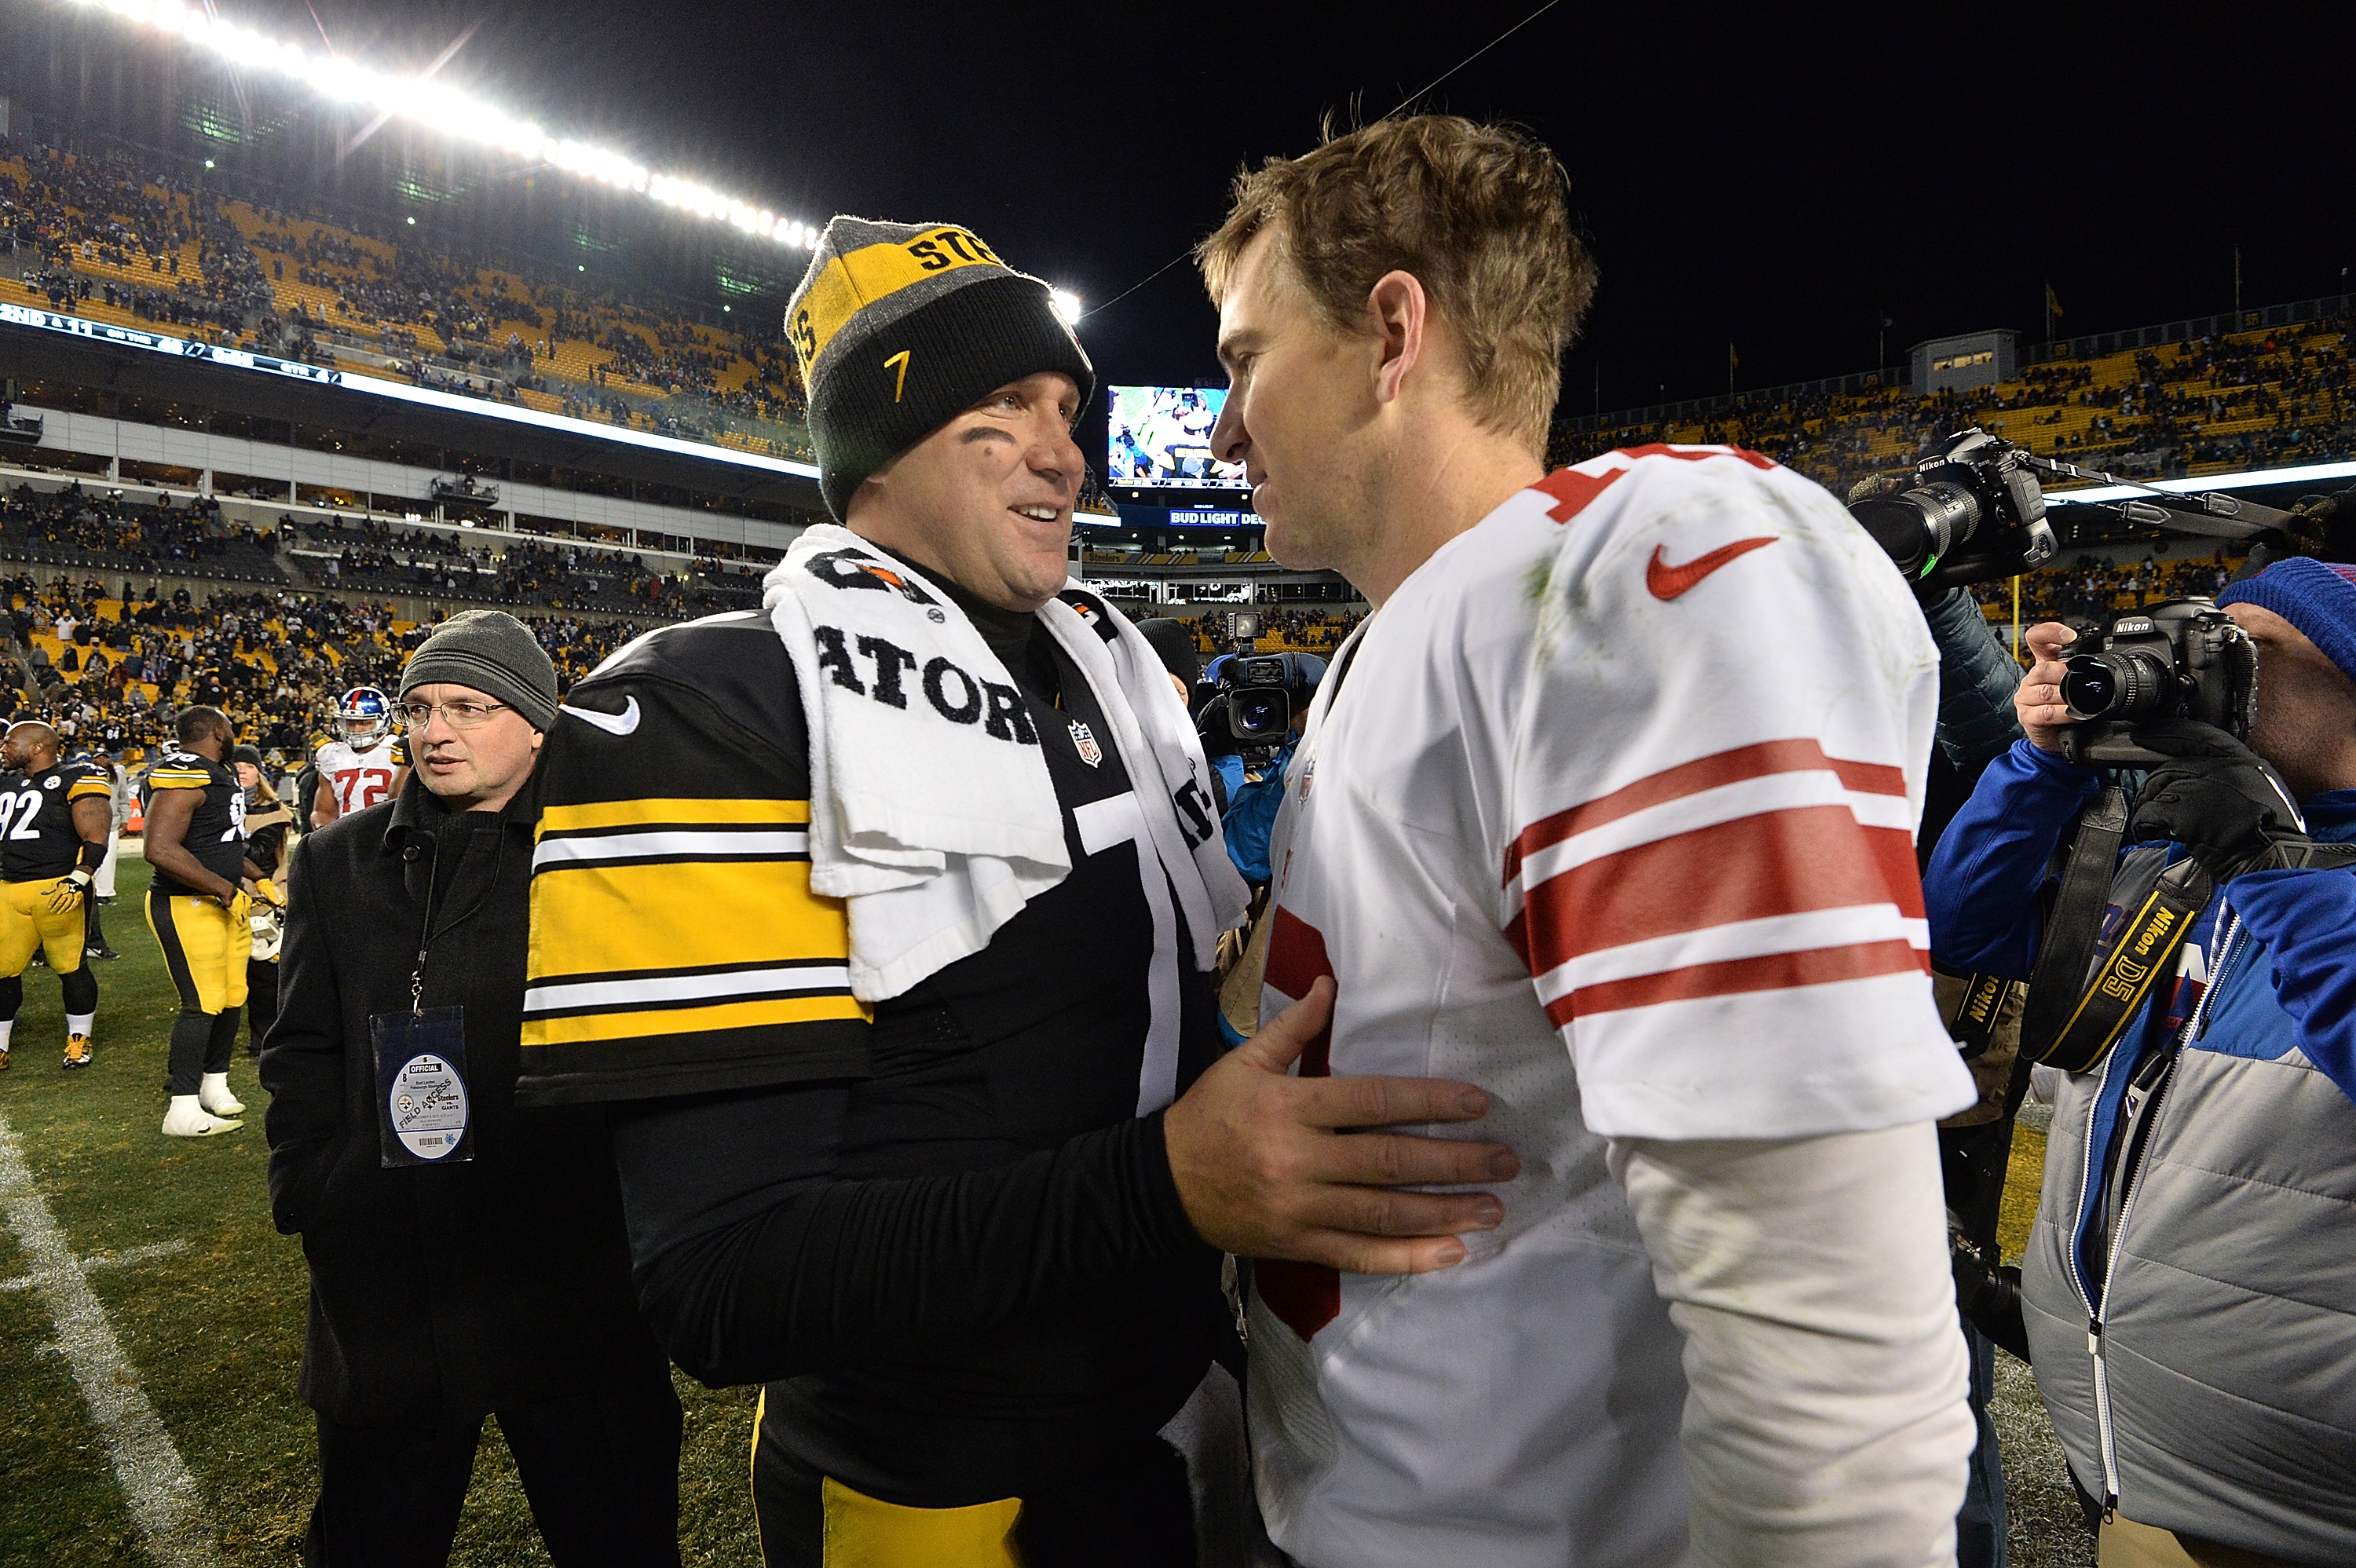 Ben Roethlisberger questions his ability after throwing 5 interceptions